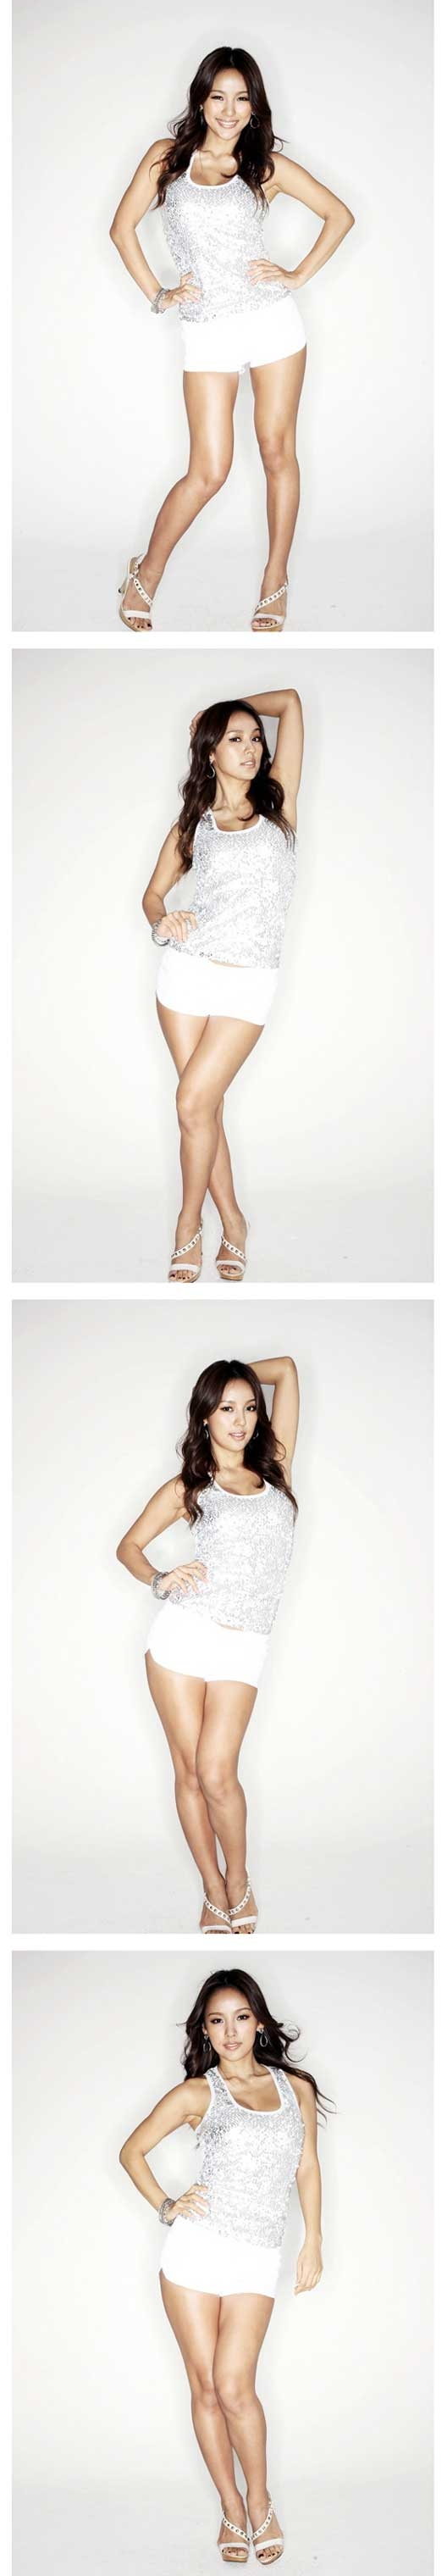 http://popseoul.files.wordpress.com/2009/07/leehyori3_200907051.jpg